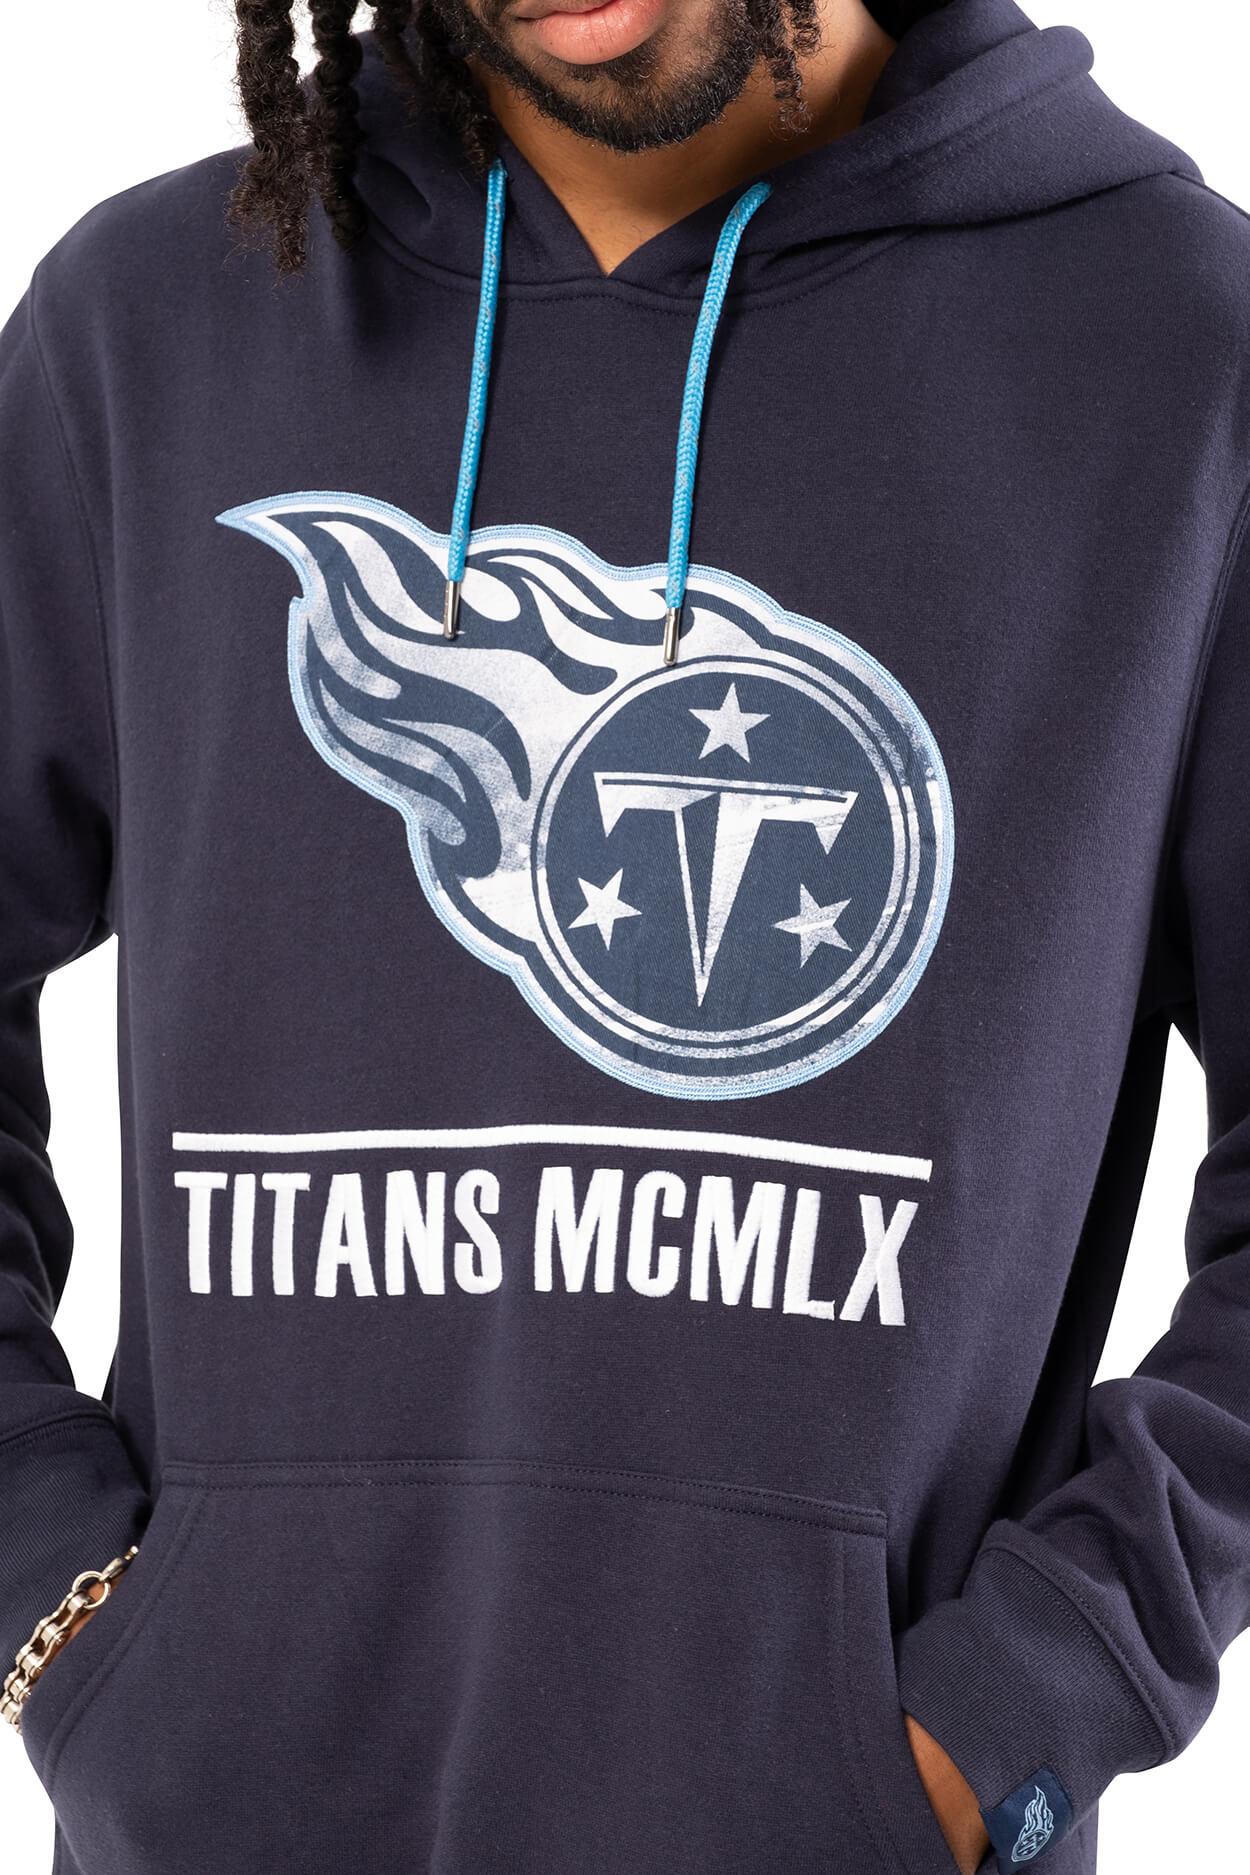 NFL Tennessee Titans Men's Embroidered Hoodie|Tennessee Titans